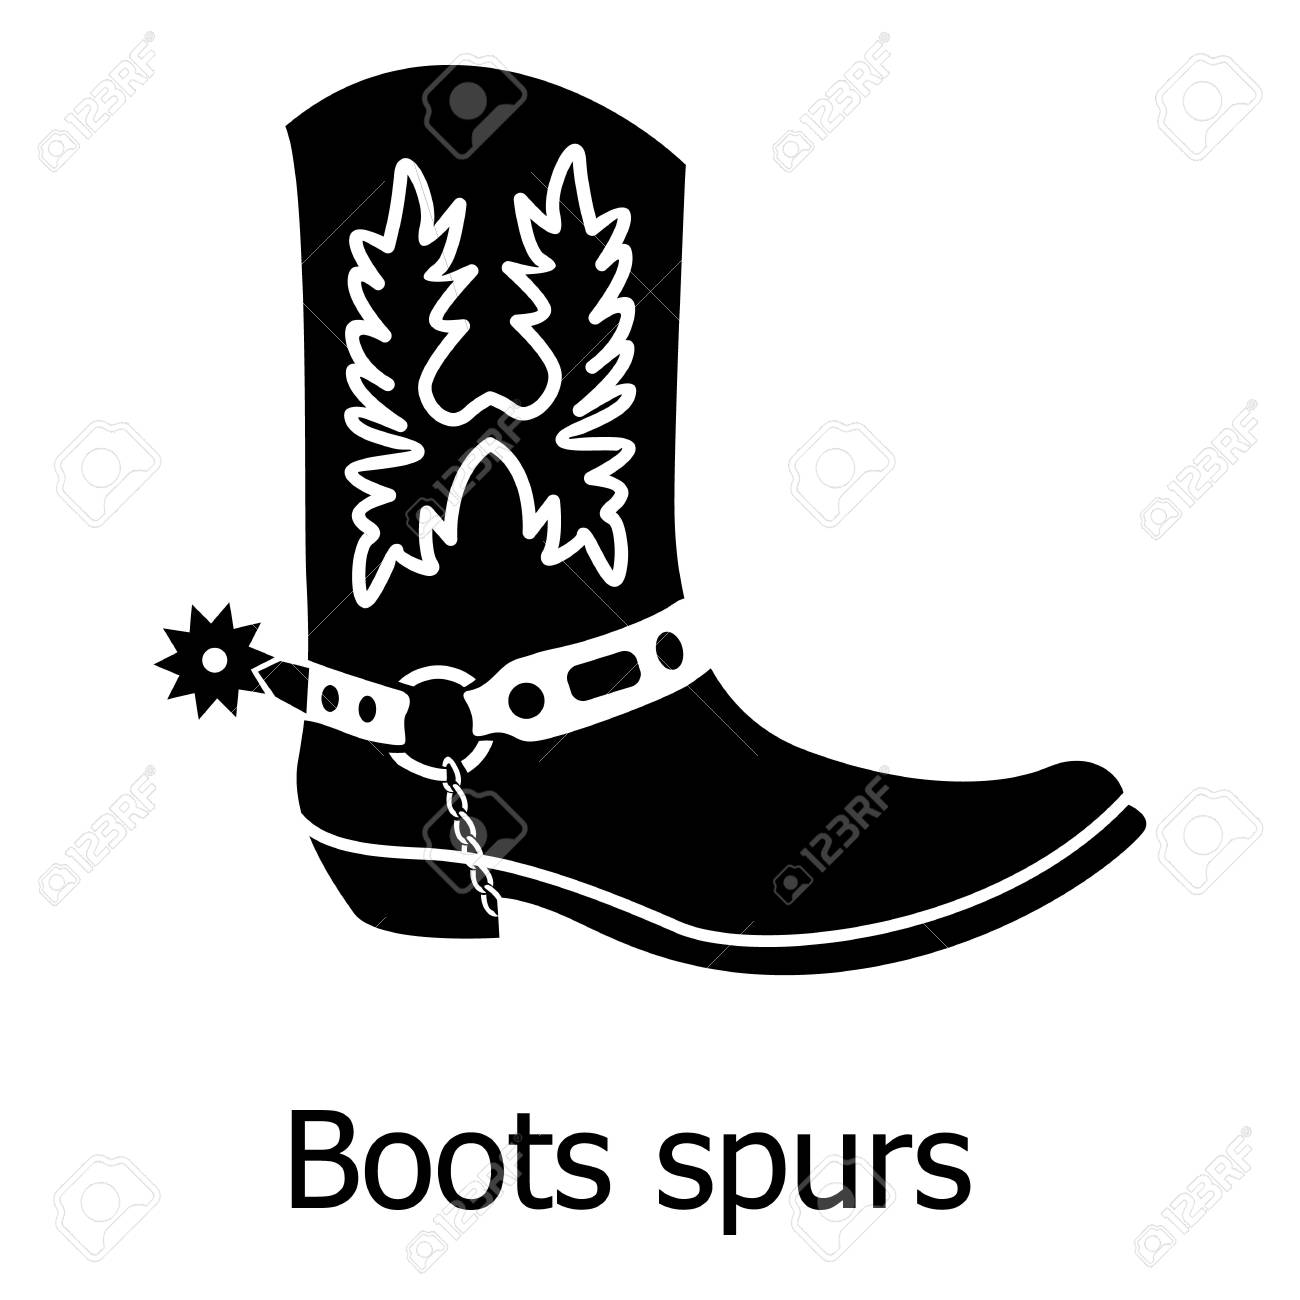 6ed3d3c3367 Boot spurs icon, simple black style Vector illustration.